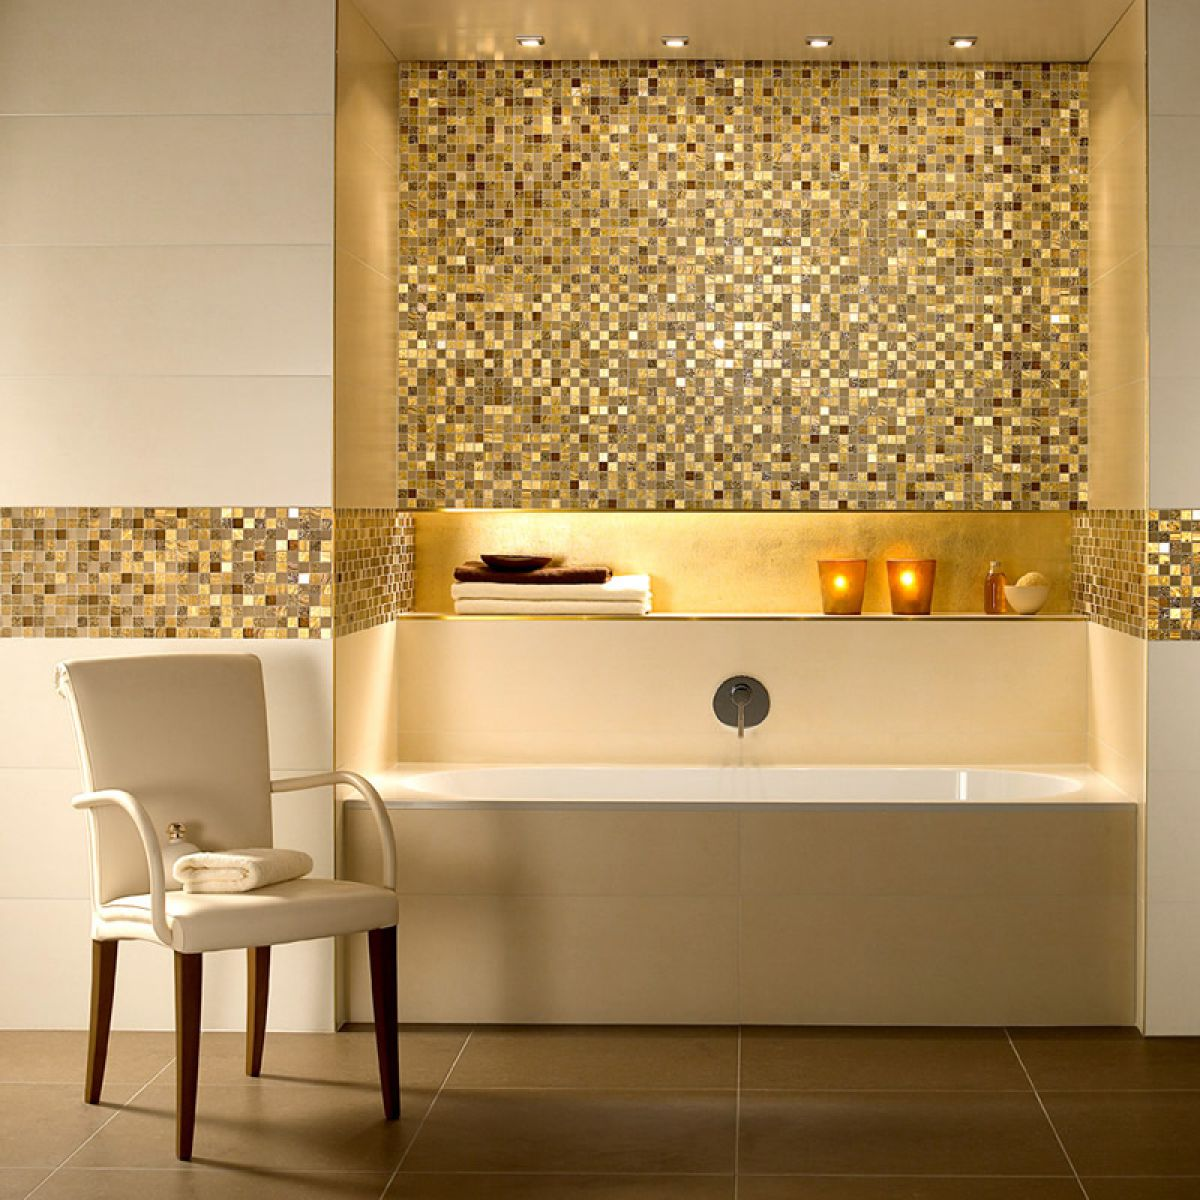 v b moonlight mosaic tiles 1042 30 x 30cm uk bathrooms